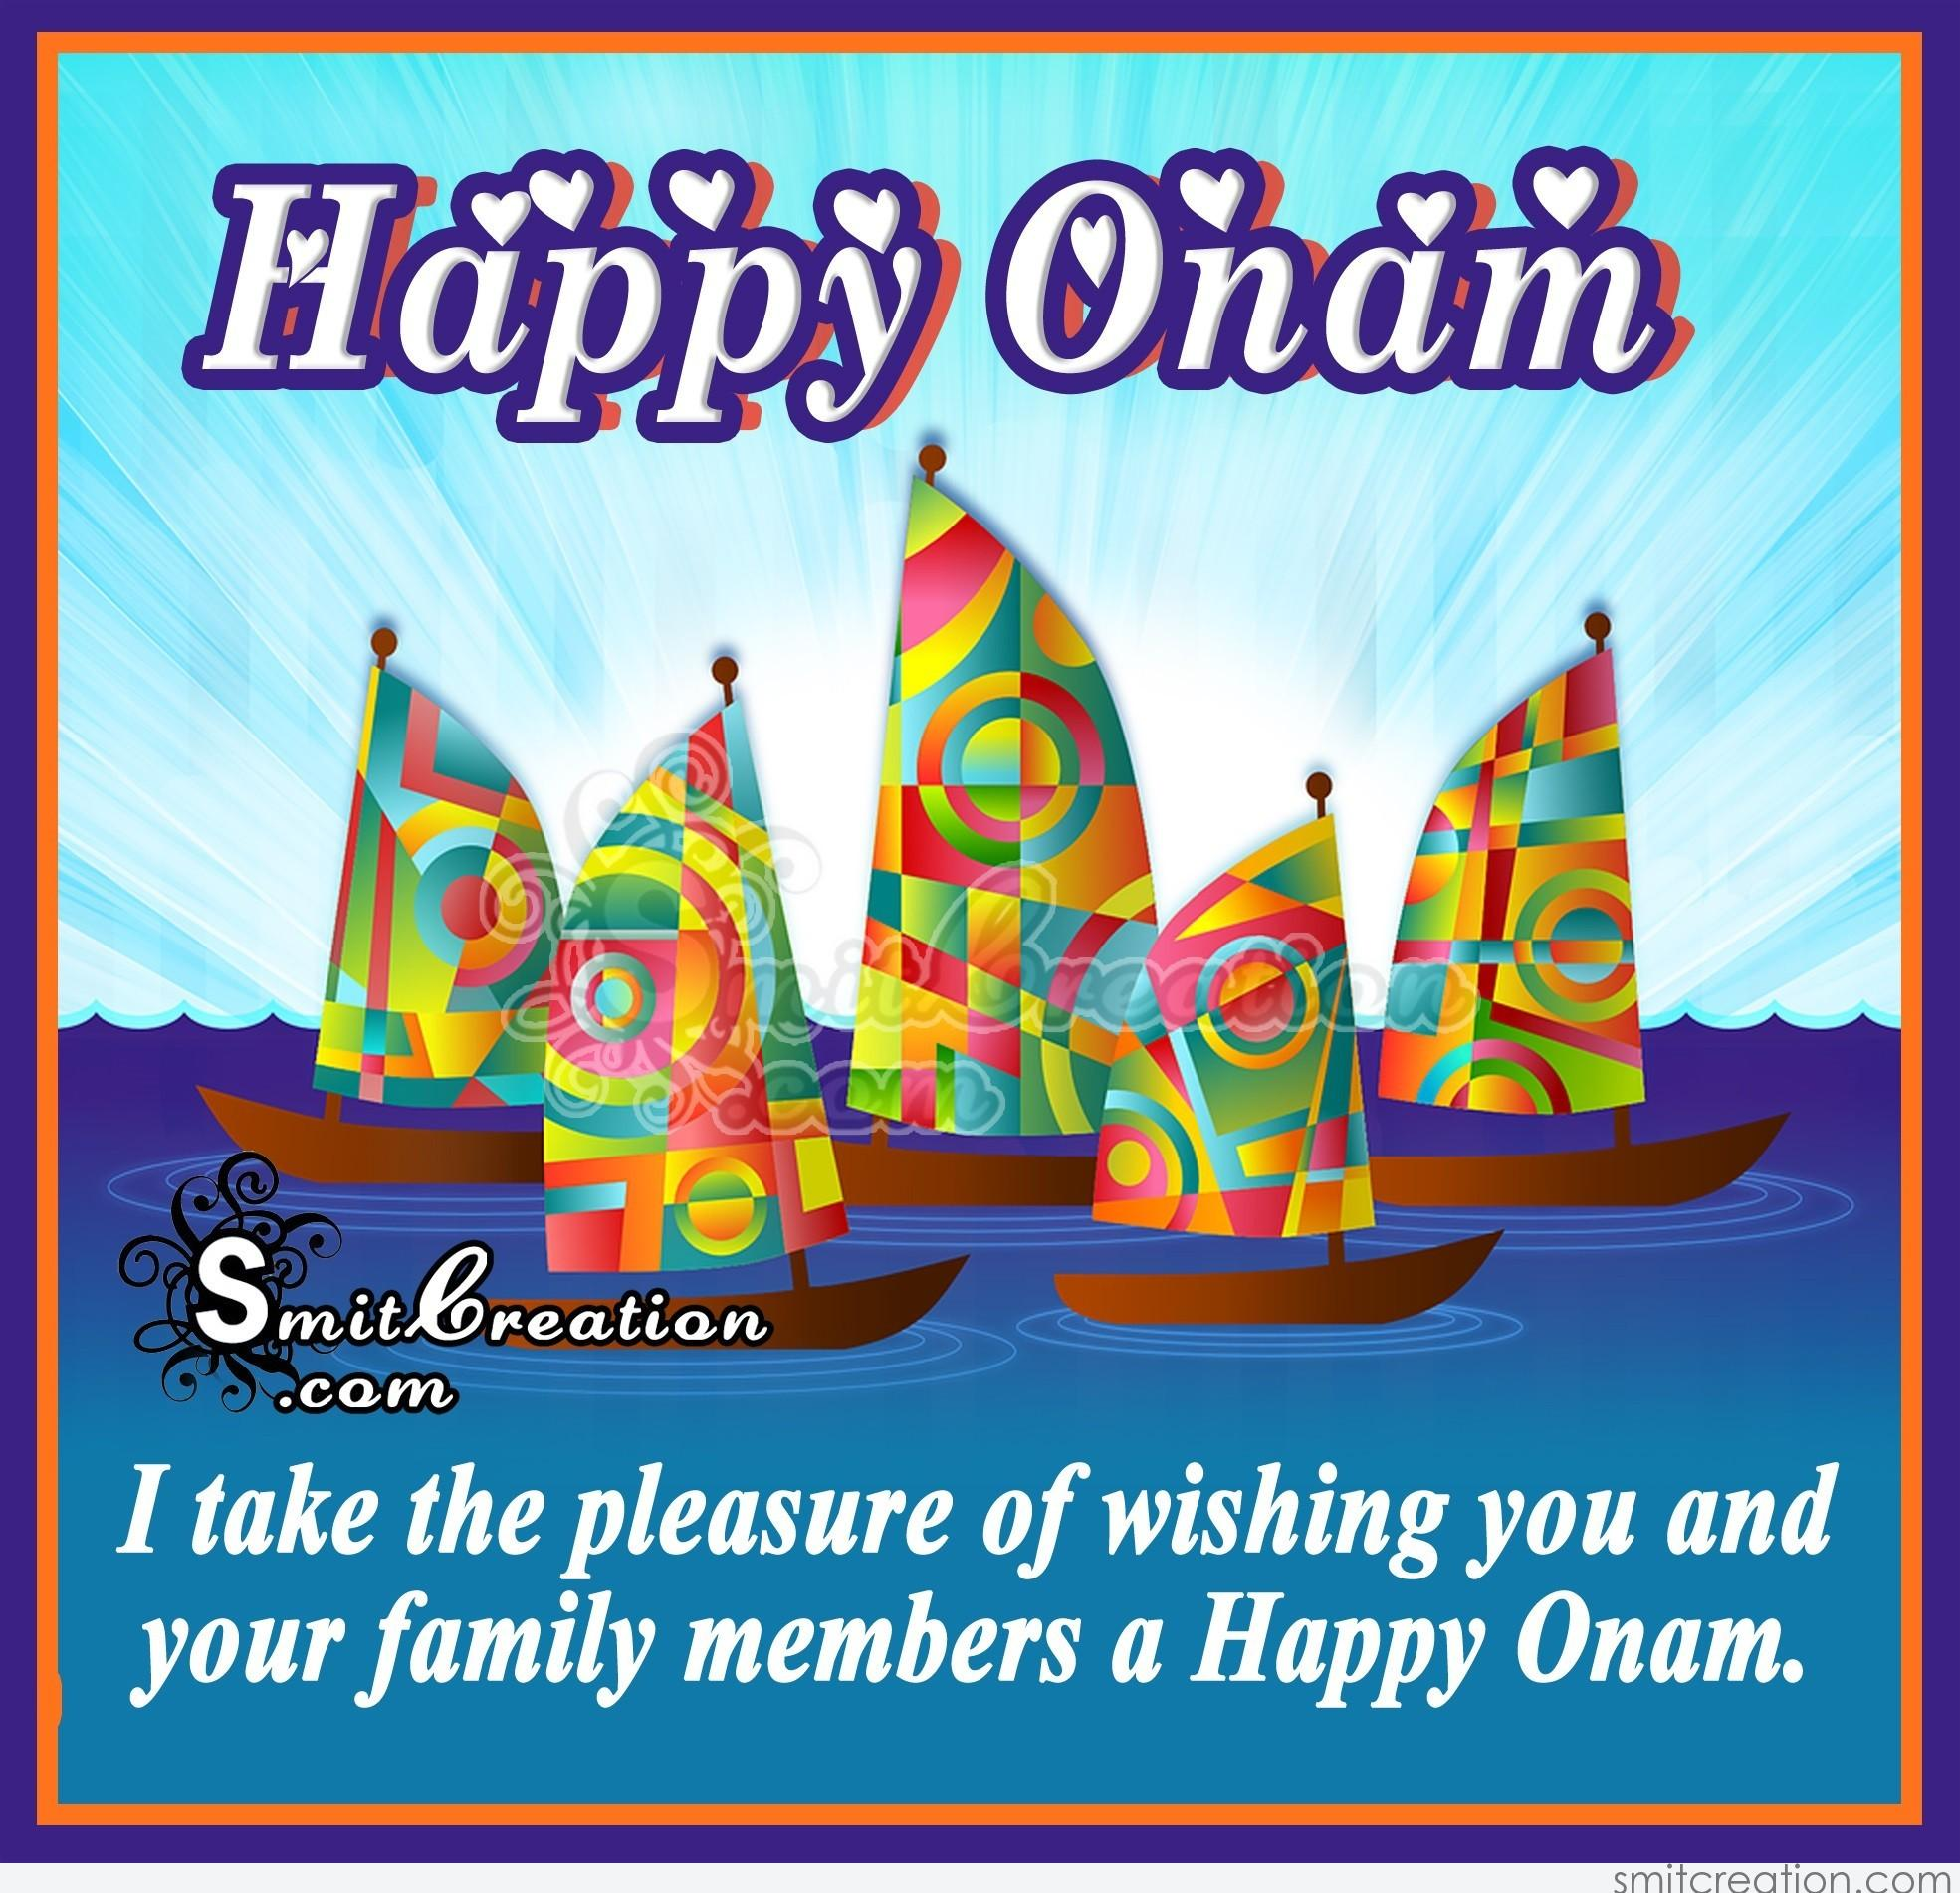 Happy Onam Wishes Smitcreation